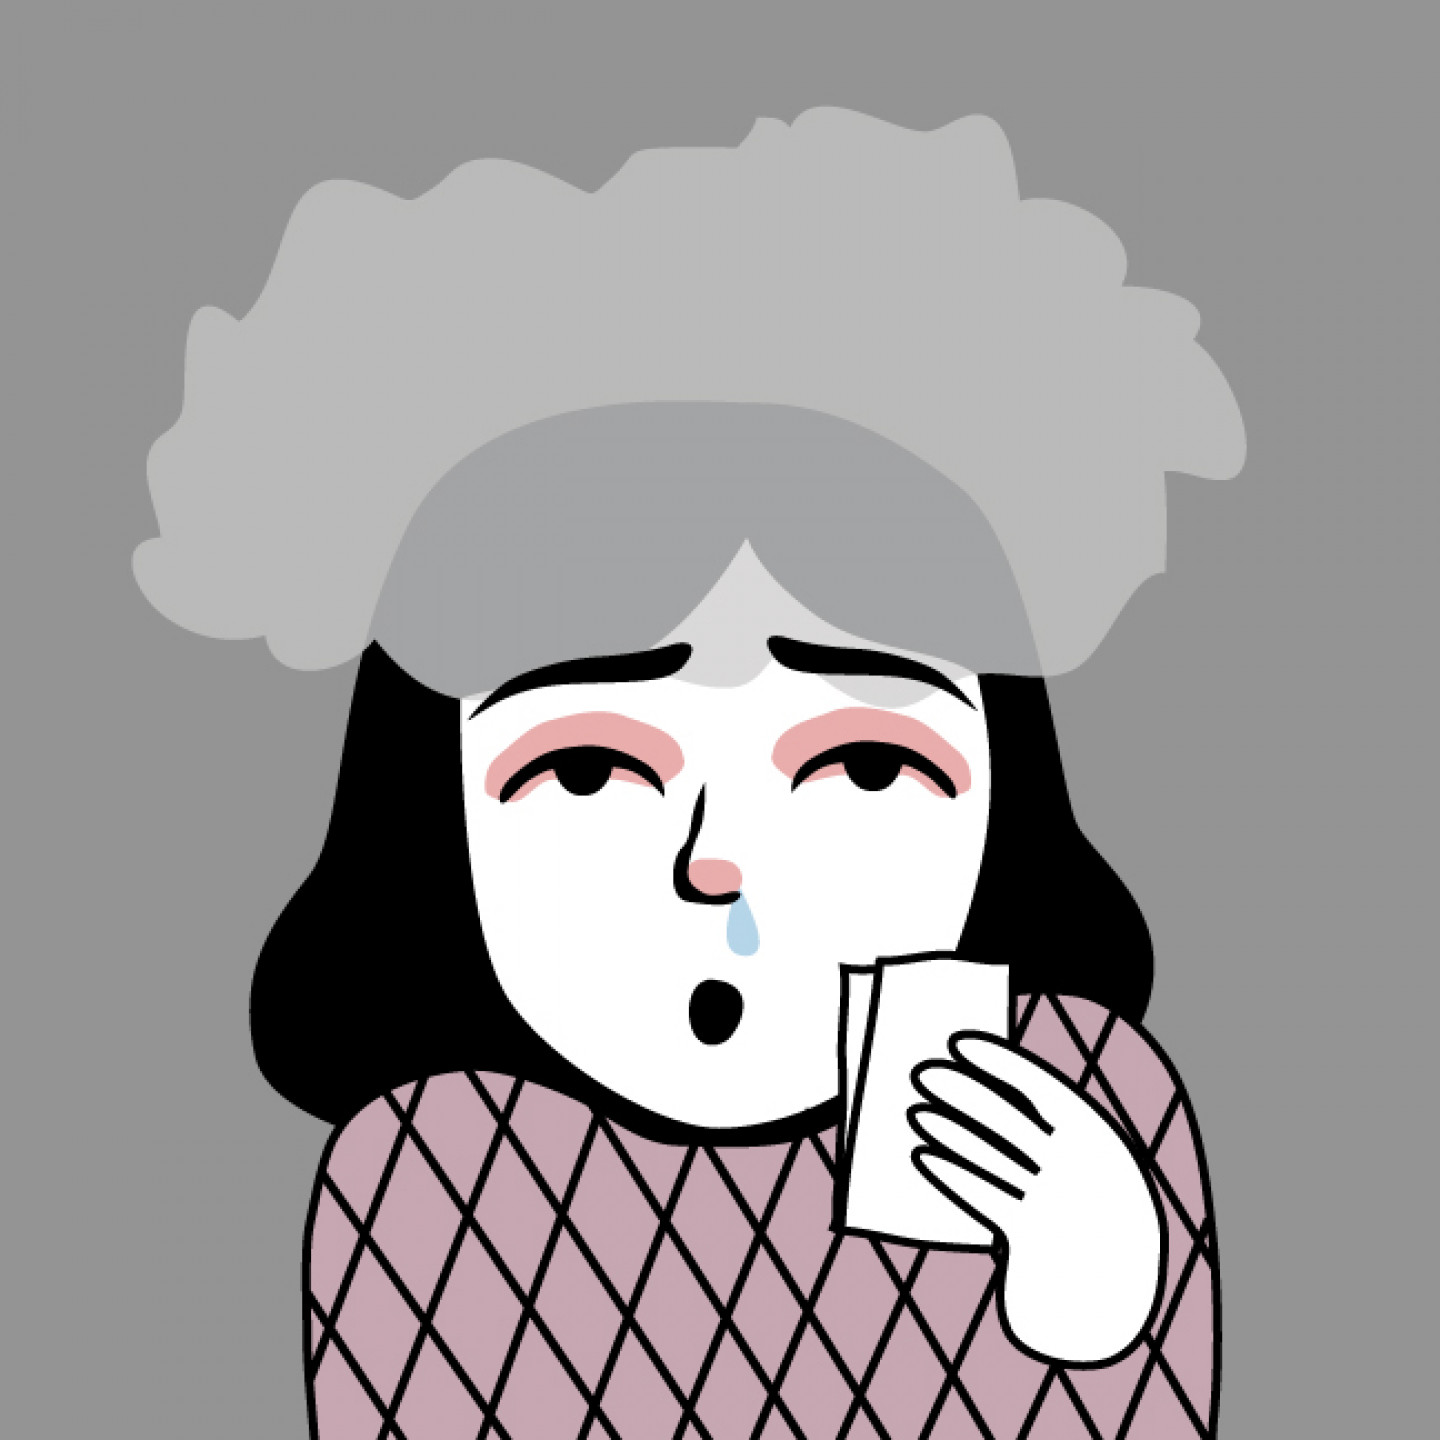 cold-and-flu-symptom-illustration